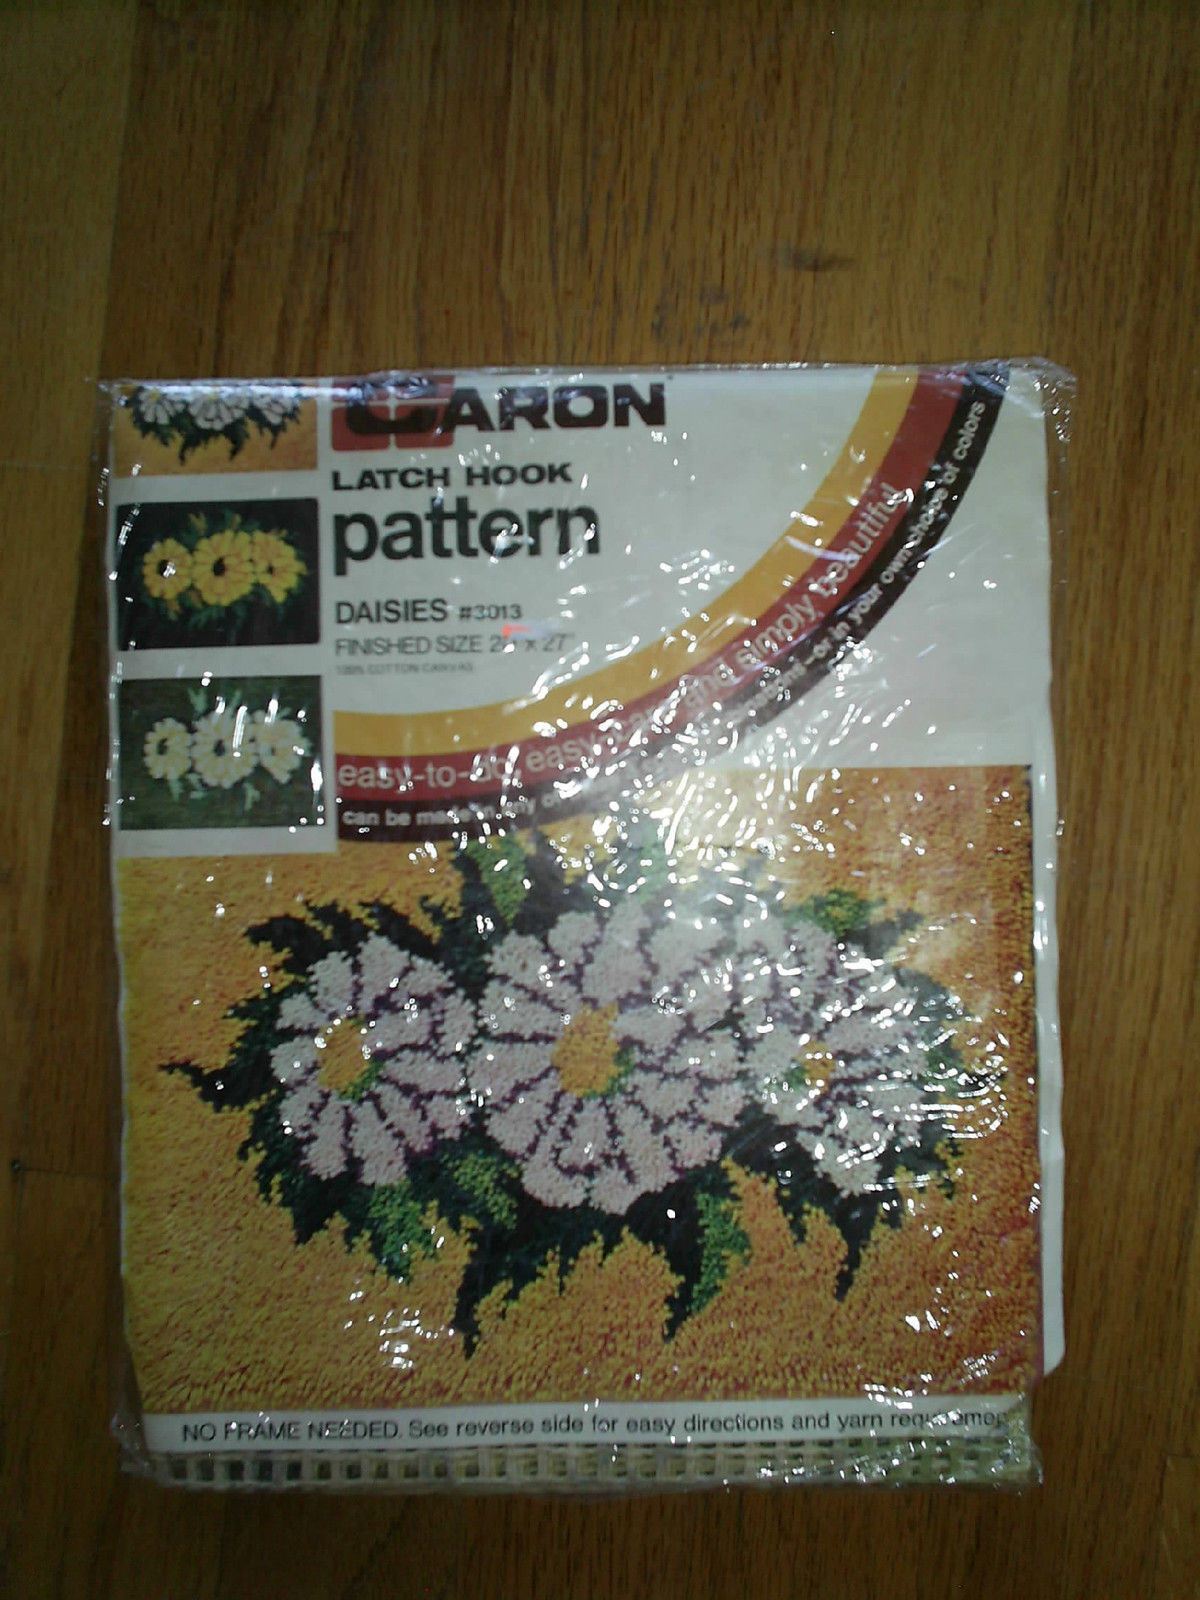 "Vintage Caron Latch Hook Rug Canvas Pattern Diasies 3013 Floral 20x27"" Sealed - $8.90"